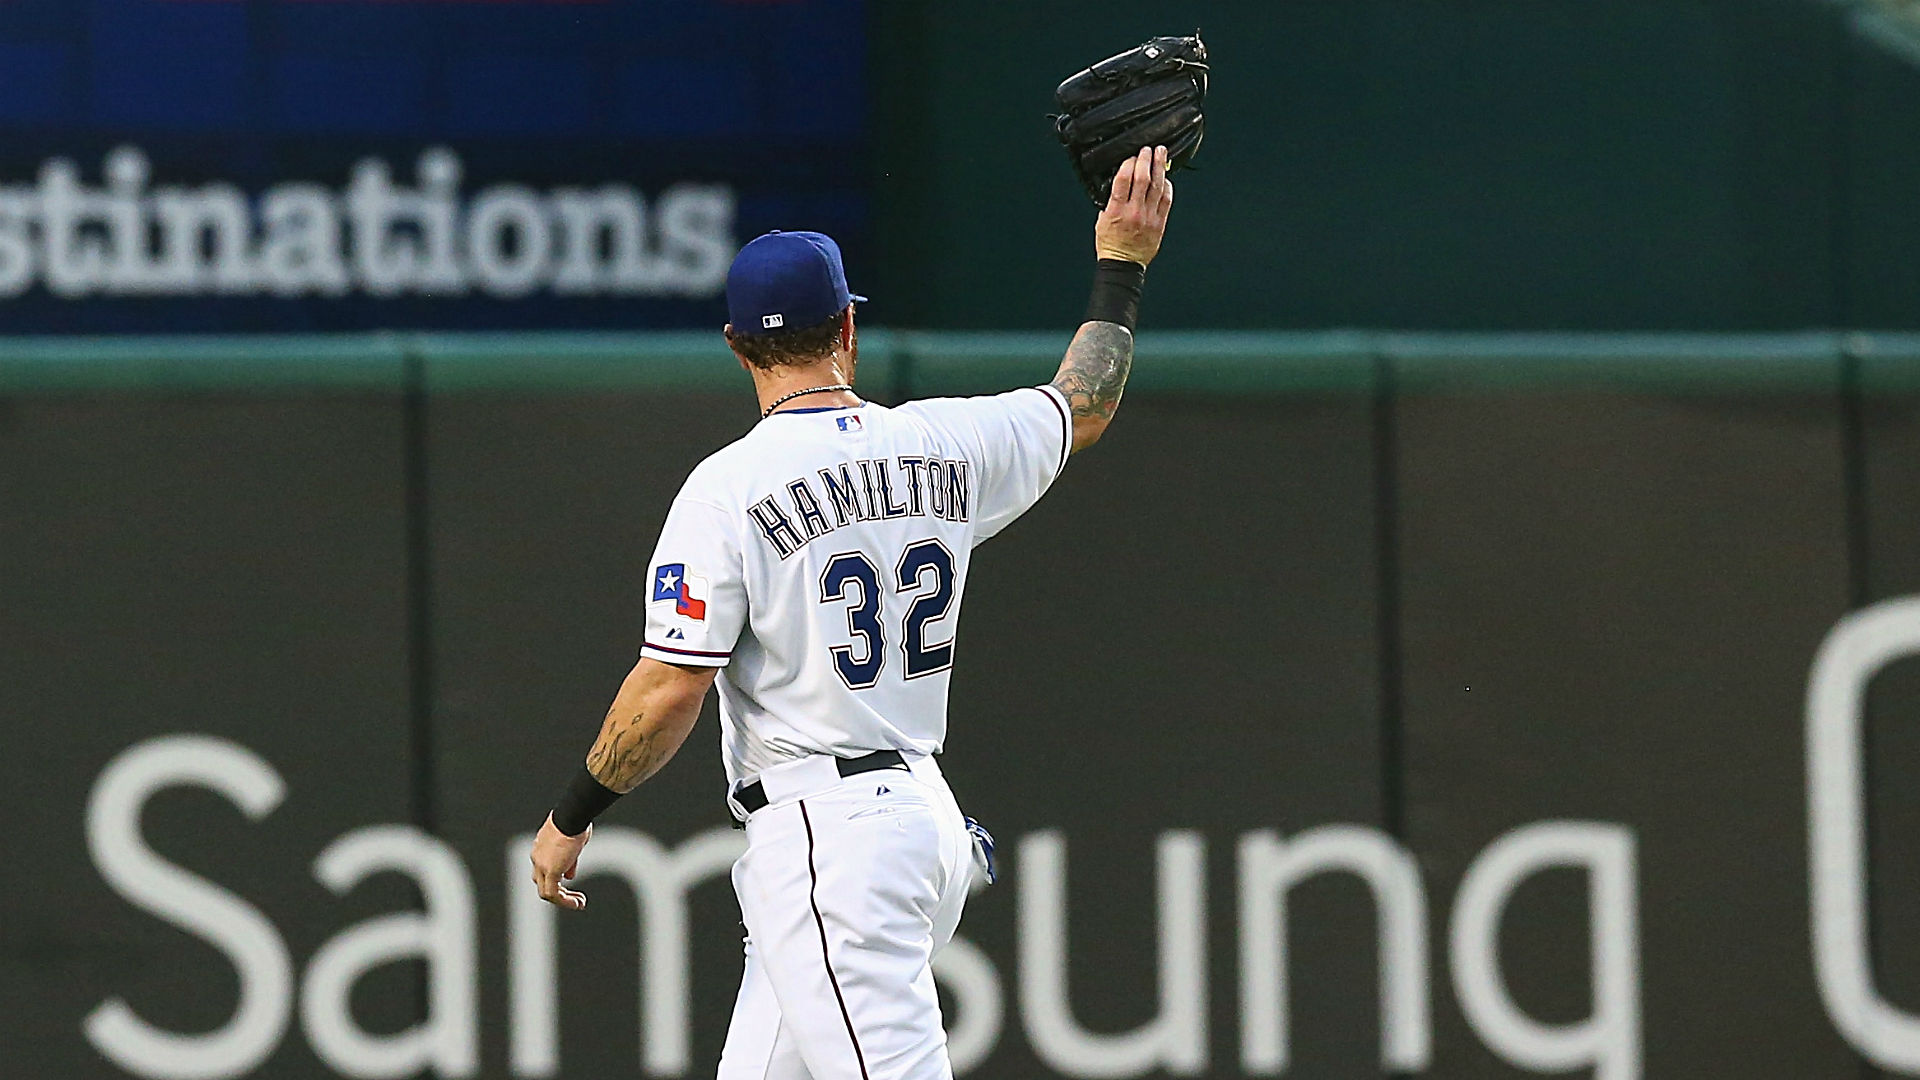 Josh Hamilton receives standing ovation in return to Texas